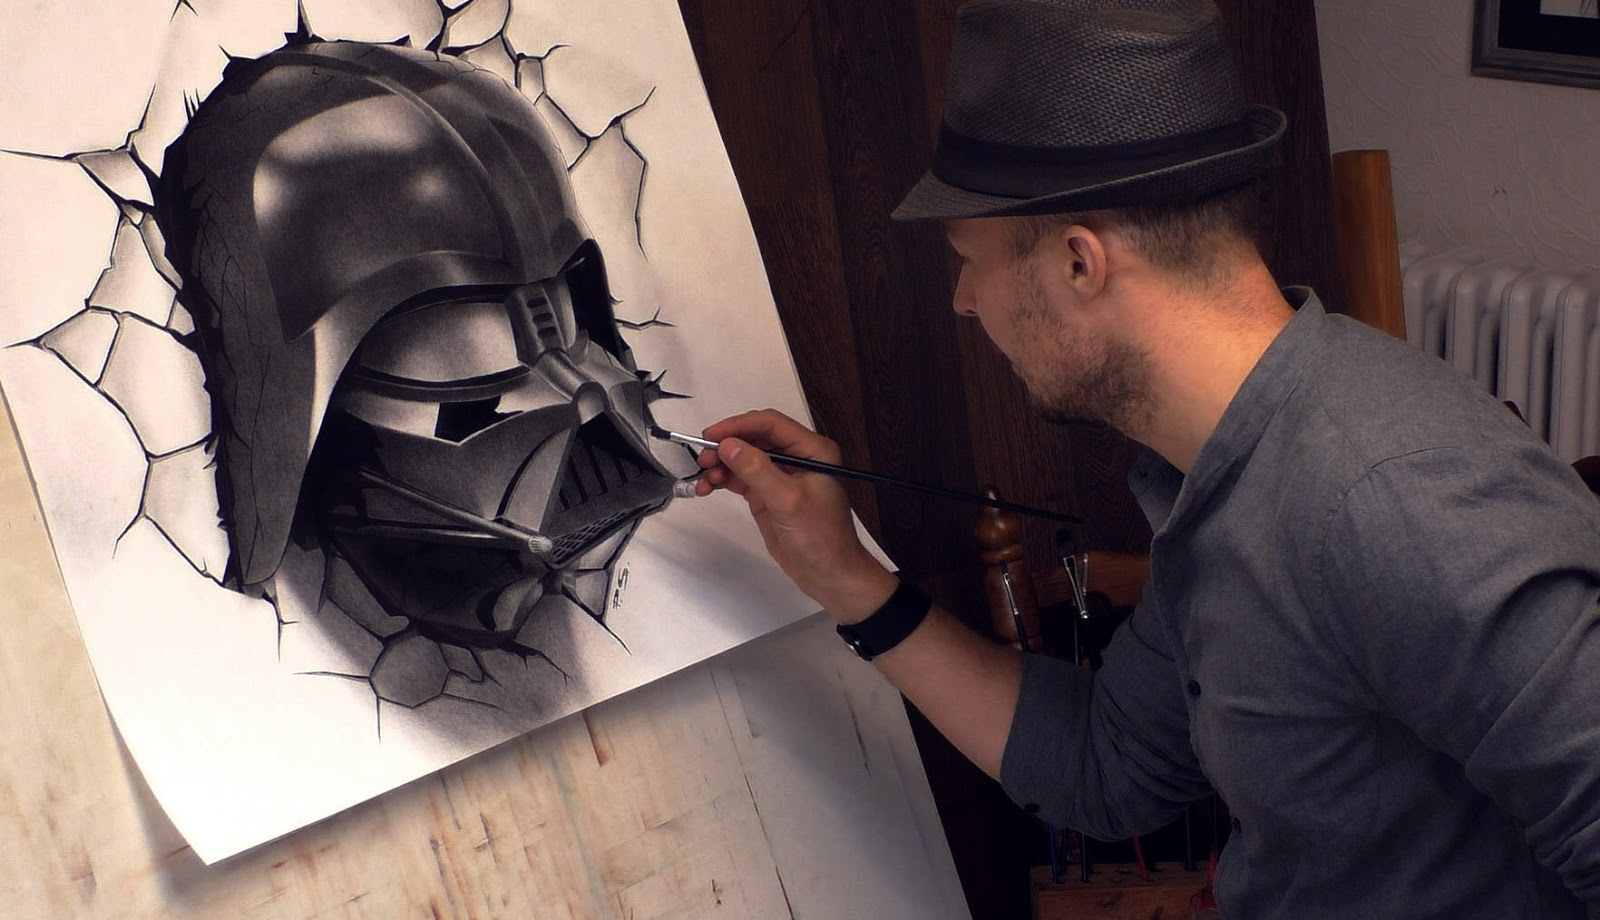 06-Darth-Vader-Star-Wars-Stefan-Pabst-3D-Optical-Illusions-Drawings-and-Paintings-www-designstack-co